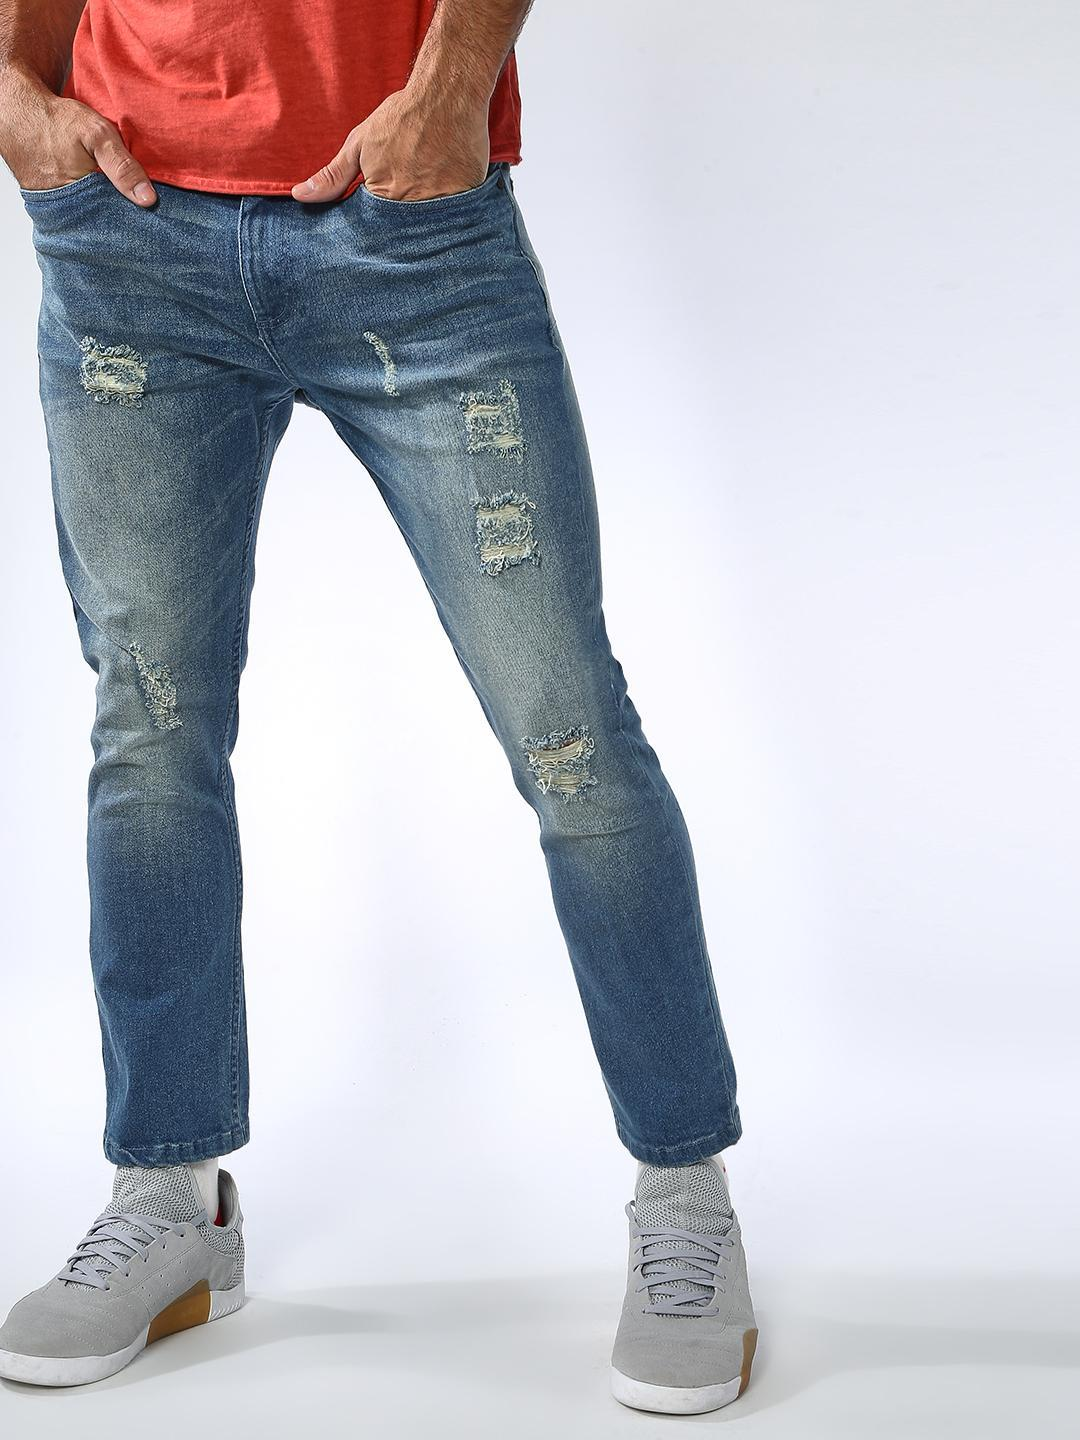 Sheltr Blue Light Shade Distressed Jeans 1